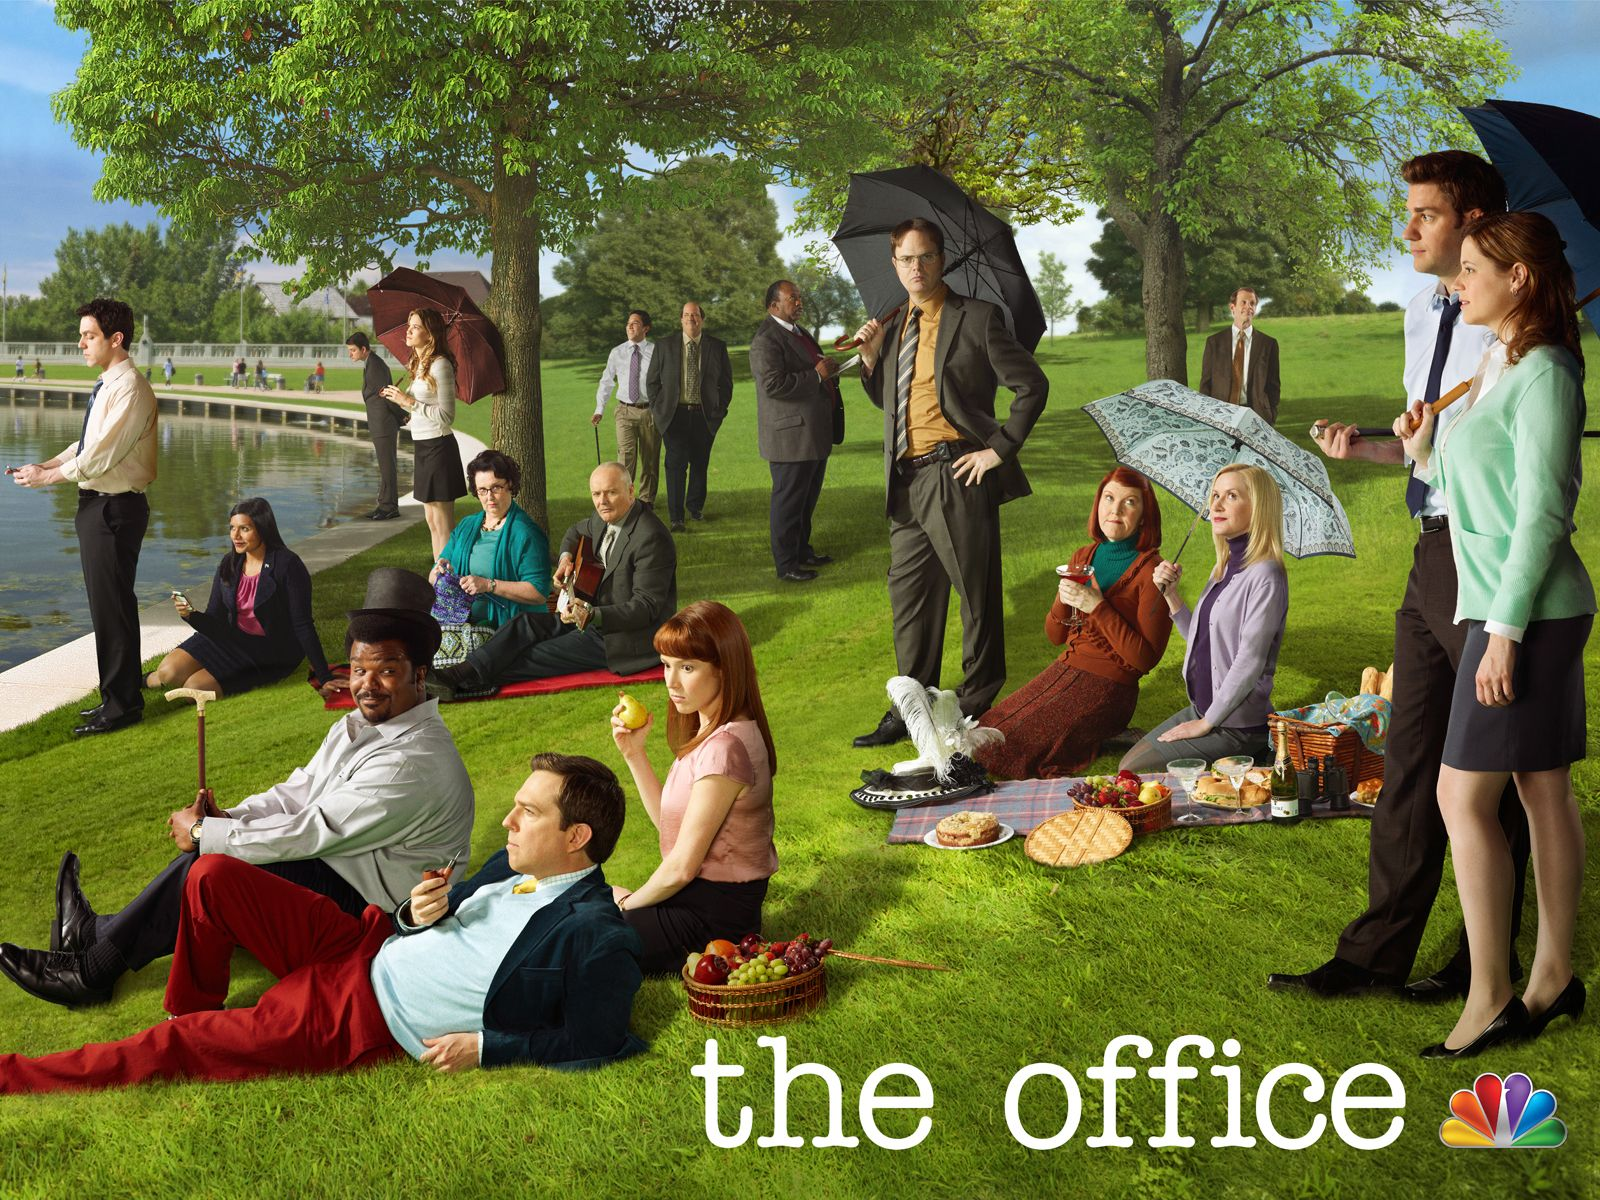 Image result for the office season 8 poster georges saurat